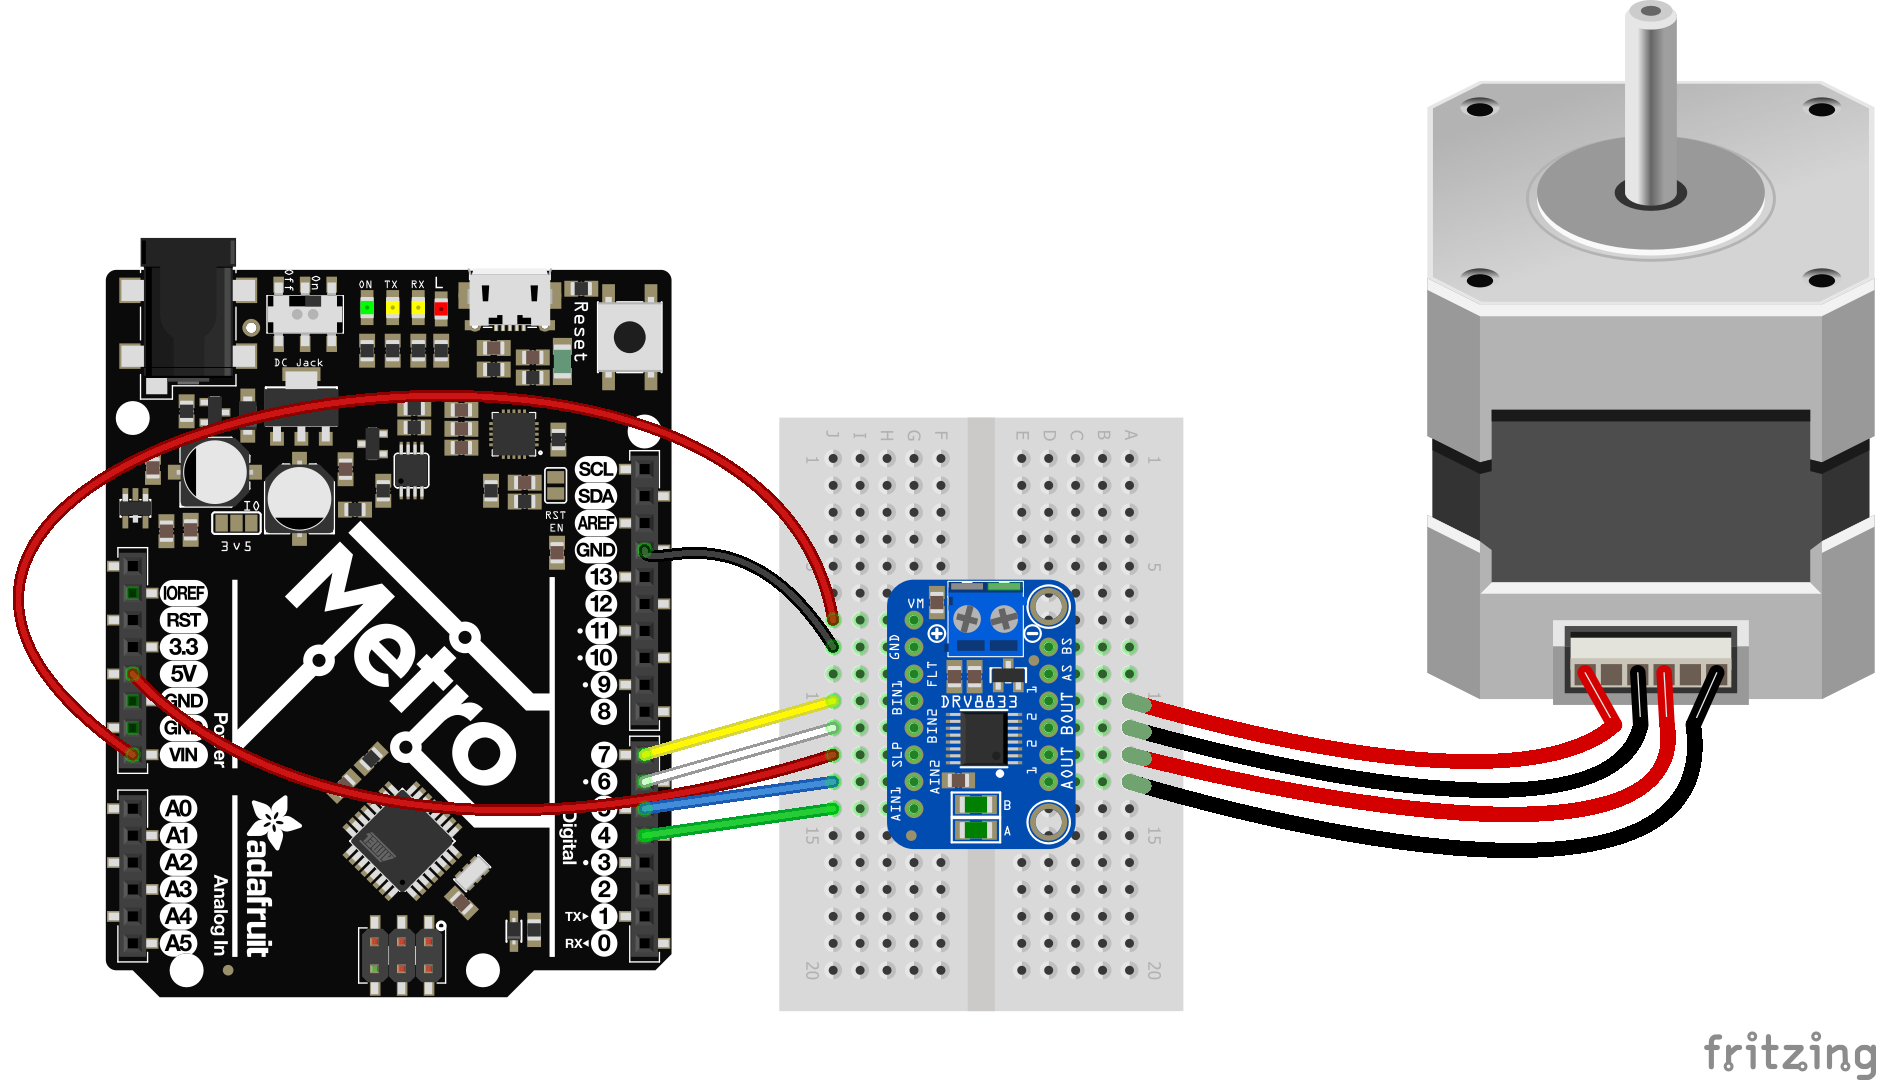 adafruit_products_drv8833demo.png